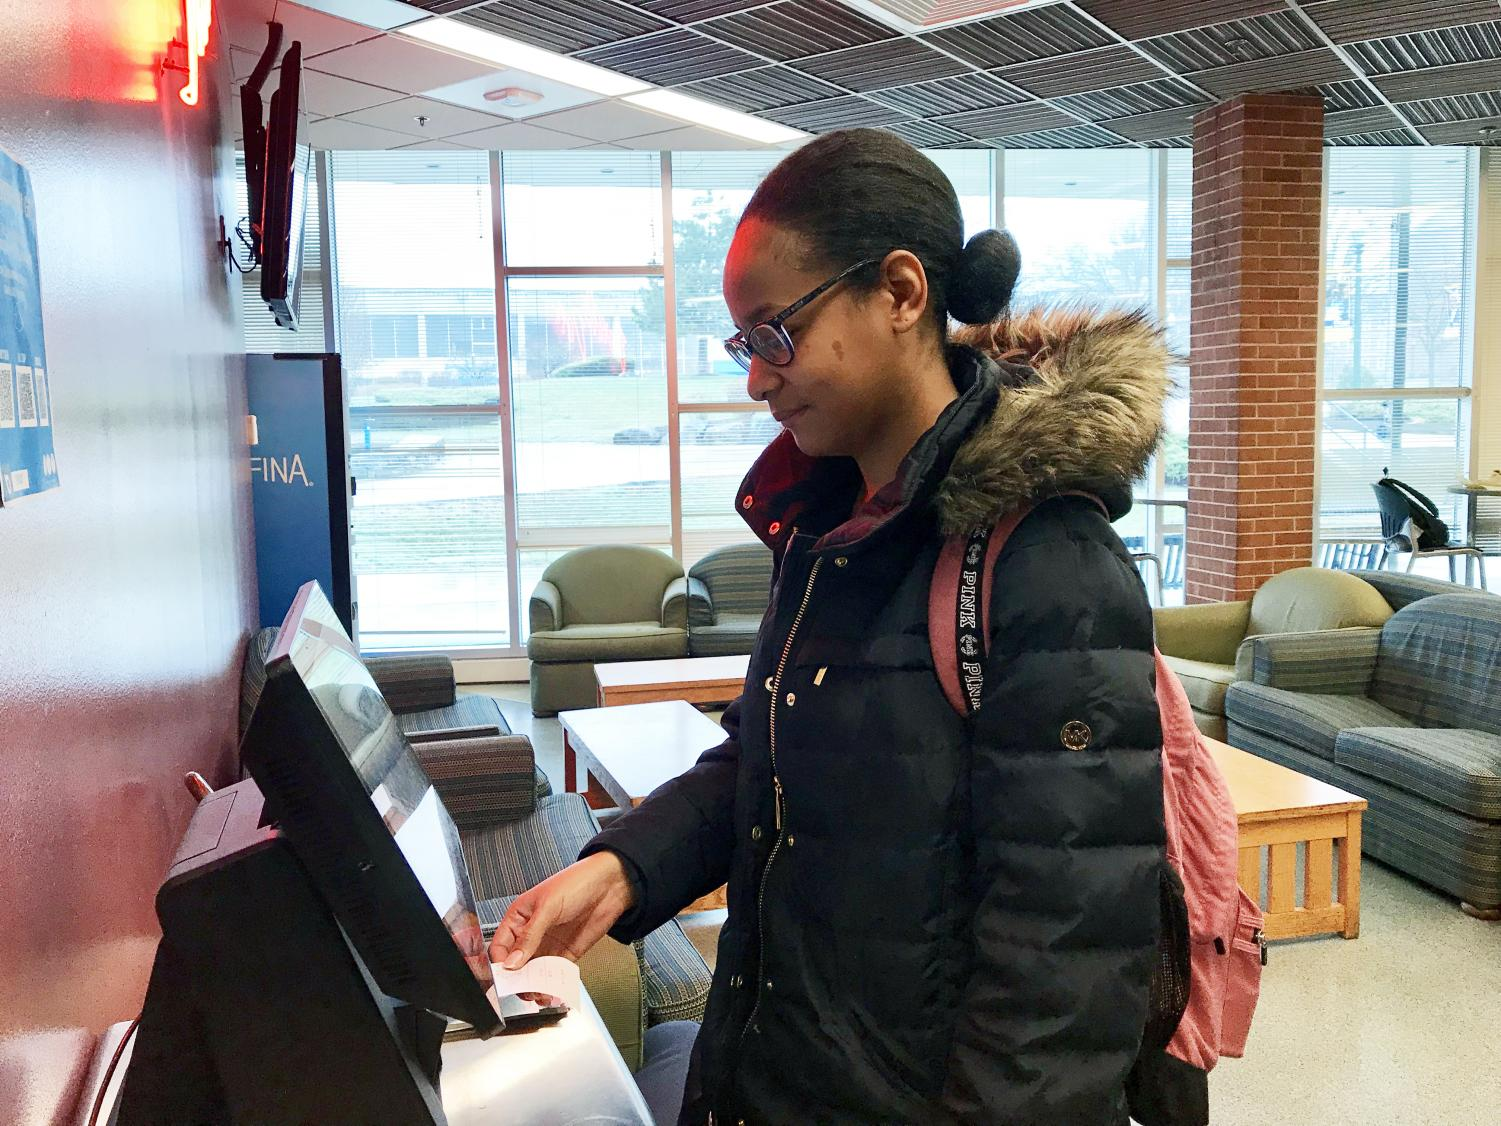 Junior criminology major Milagros Valdez orders food at Devil's Den on the touch screen system, which the SGA will try to make more accessible.